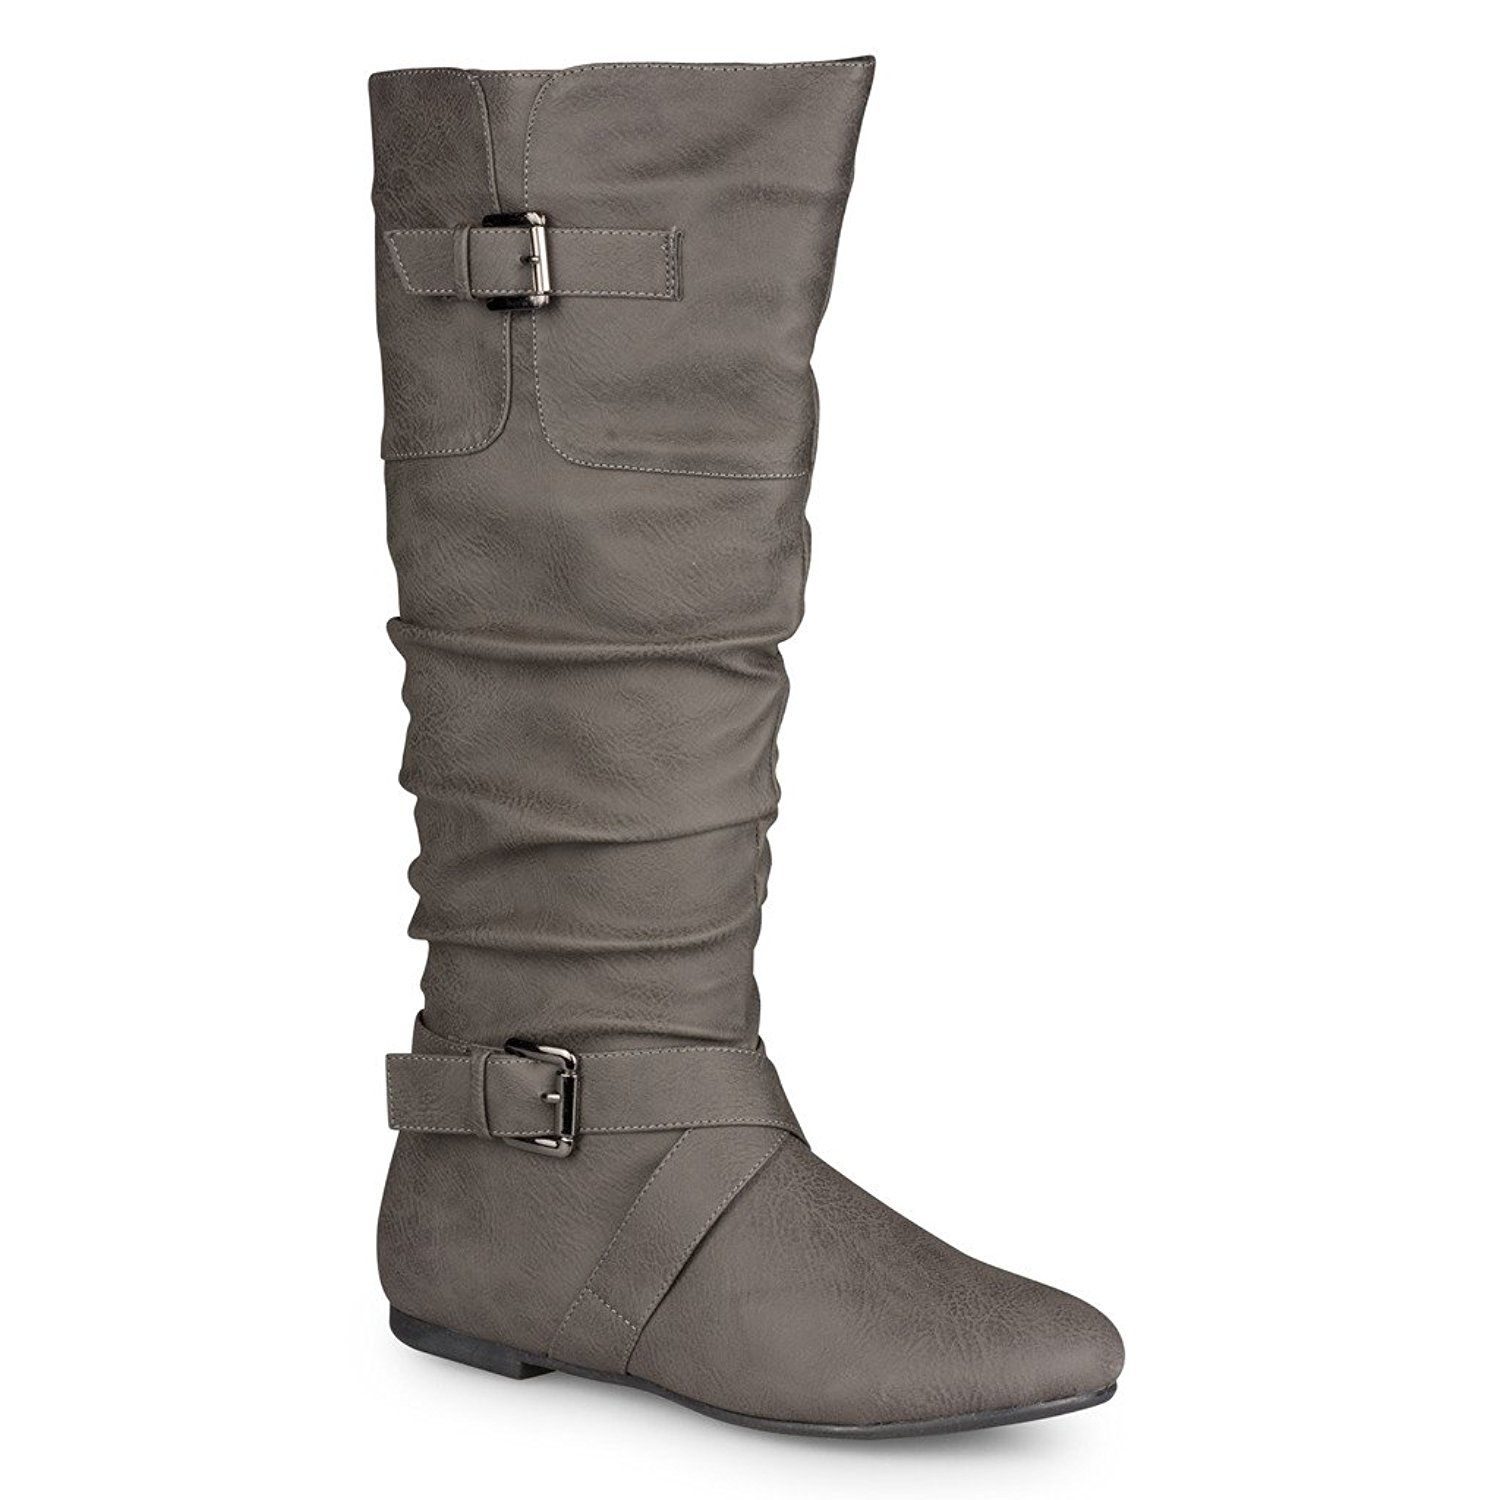 faux leather, Womens mid calf boots